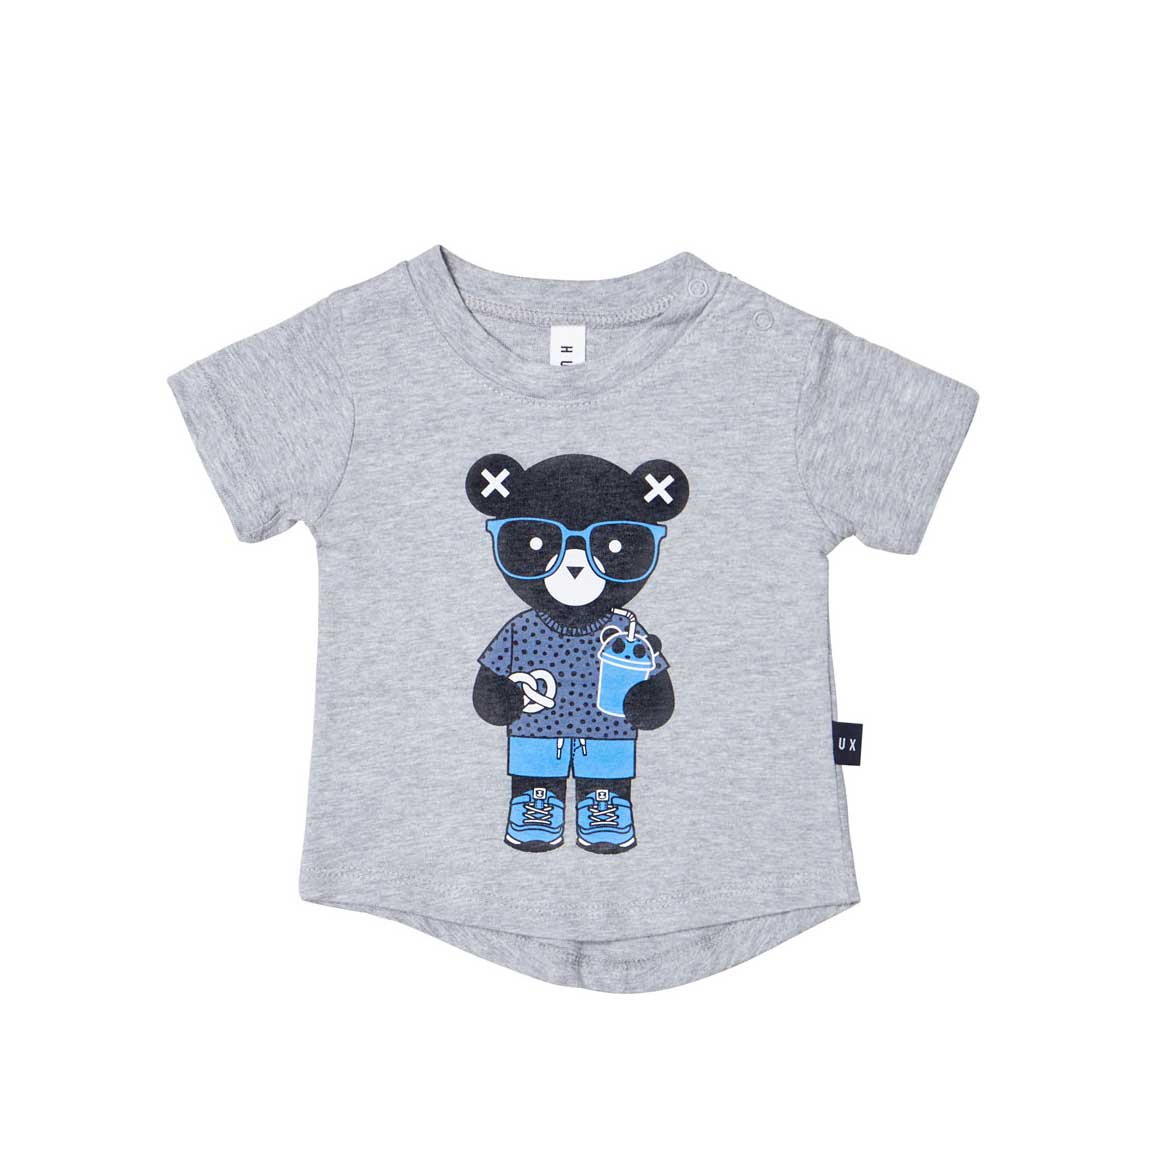 Huxbear Grey T-Shirt